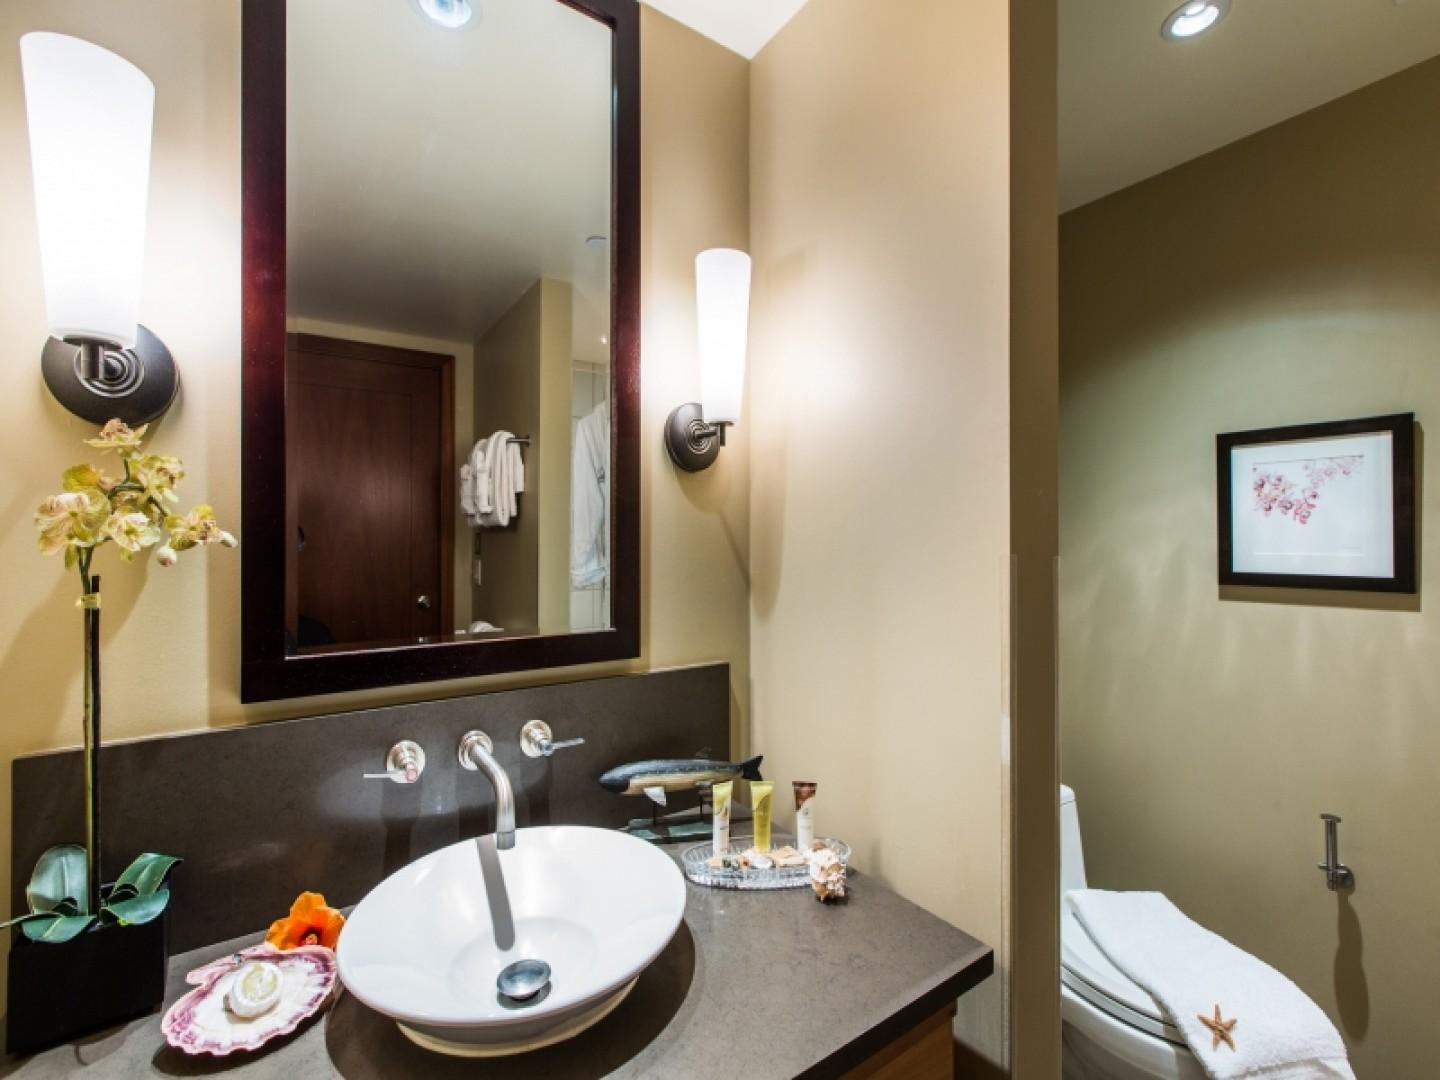 Second full bathroom has a shower/tub combo and is complimented with bathroom essentials